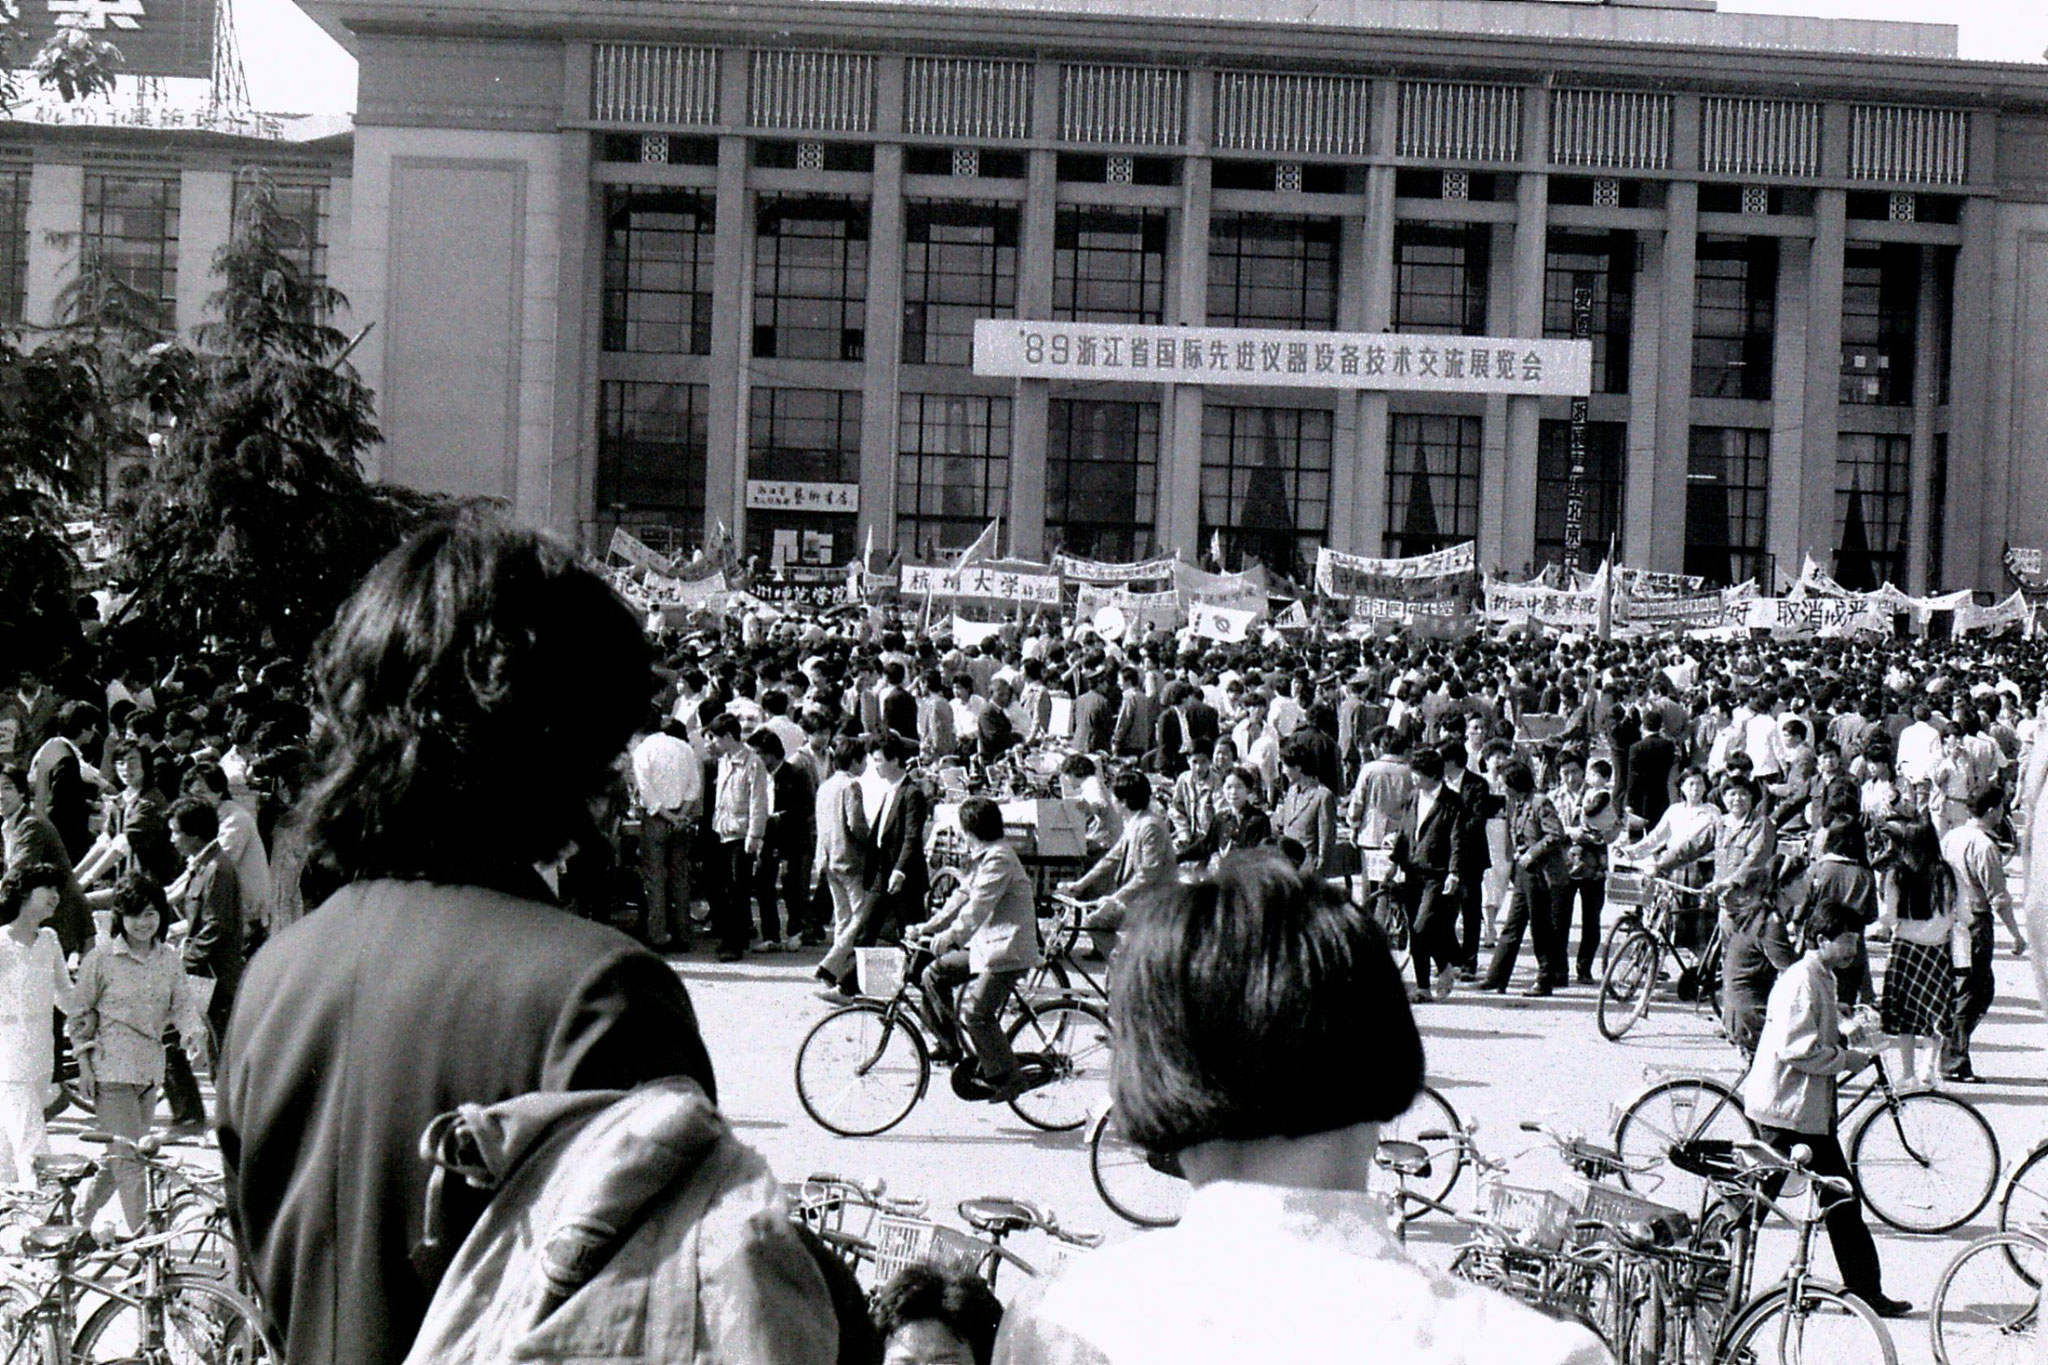 25/5/1989: 4: Hangzhou demopnstration outside exhibition centre